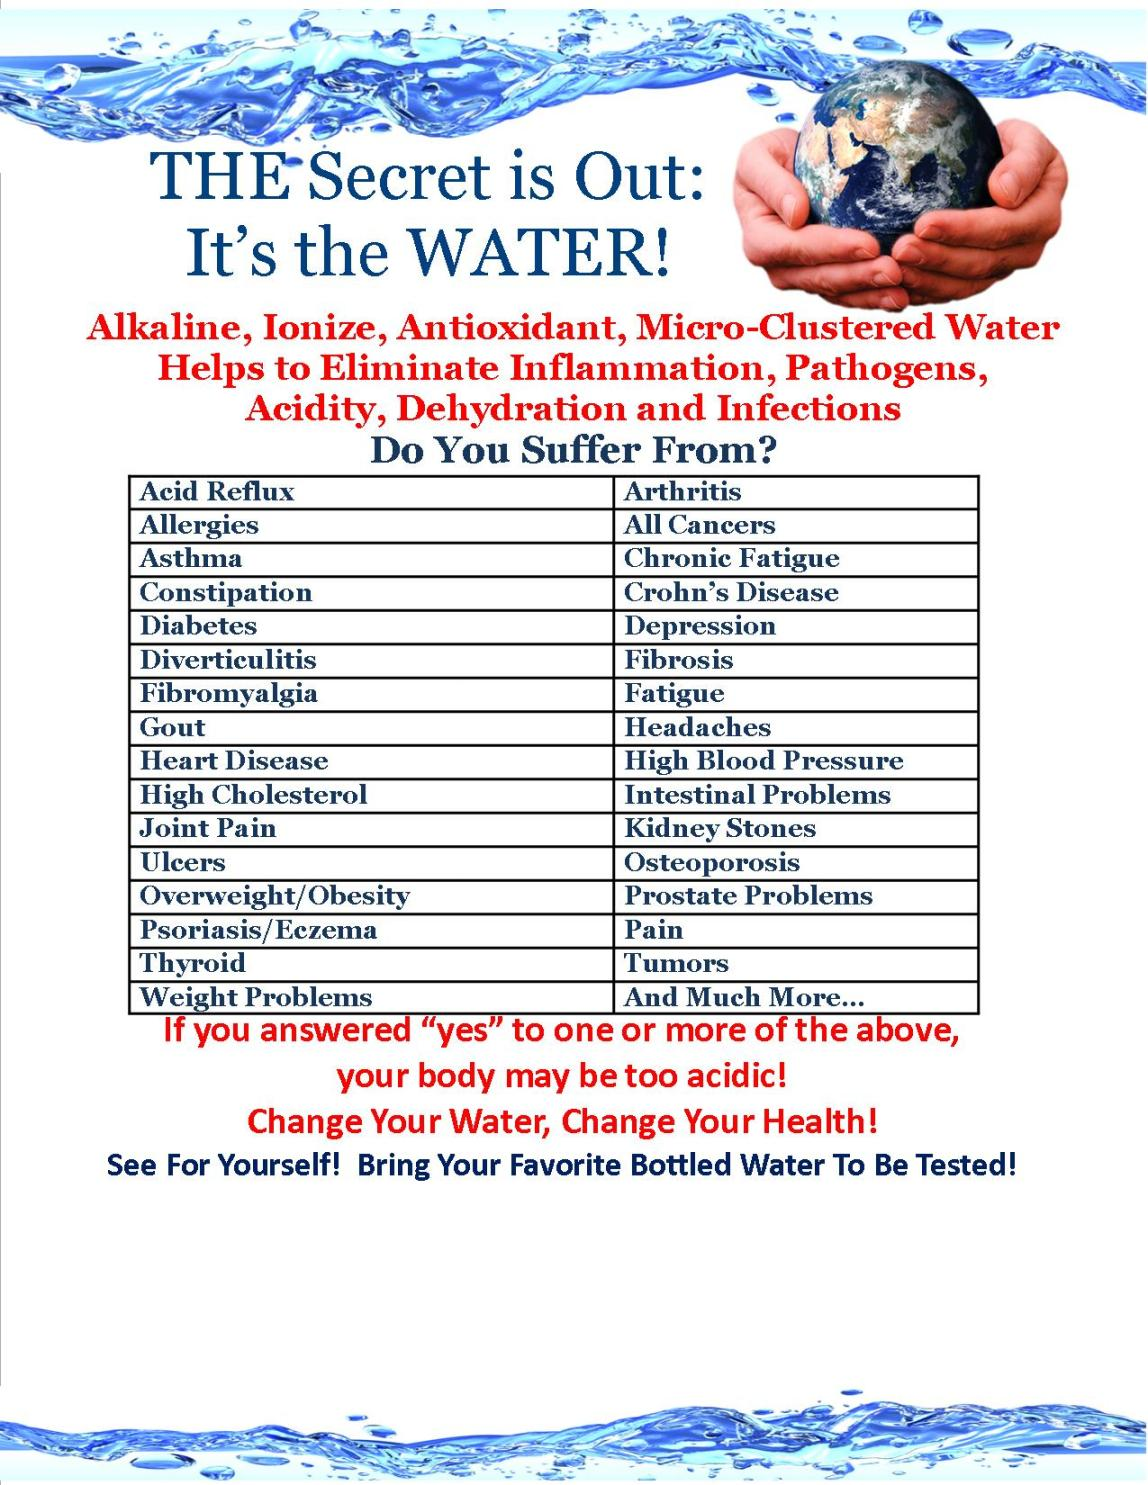 Free Kangen Water Demo Sat. Jan. 18th. 2014 4pm - 6pm